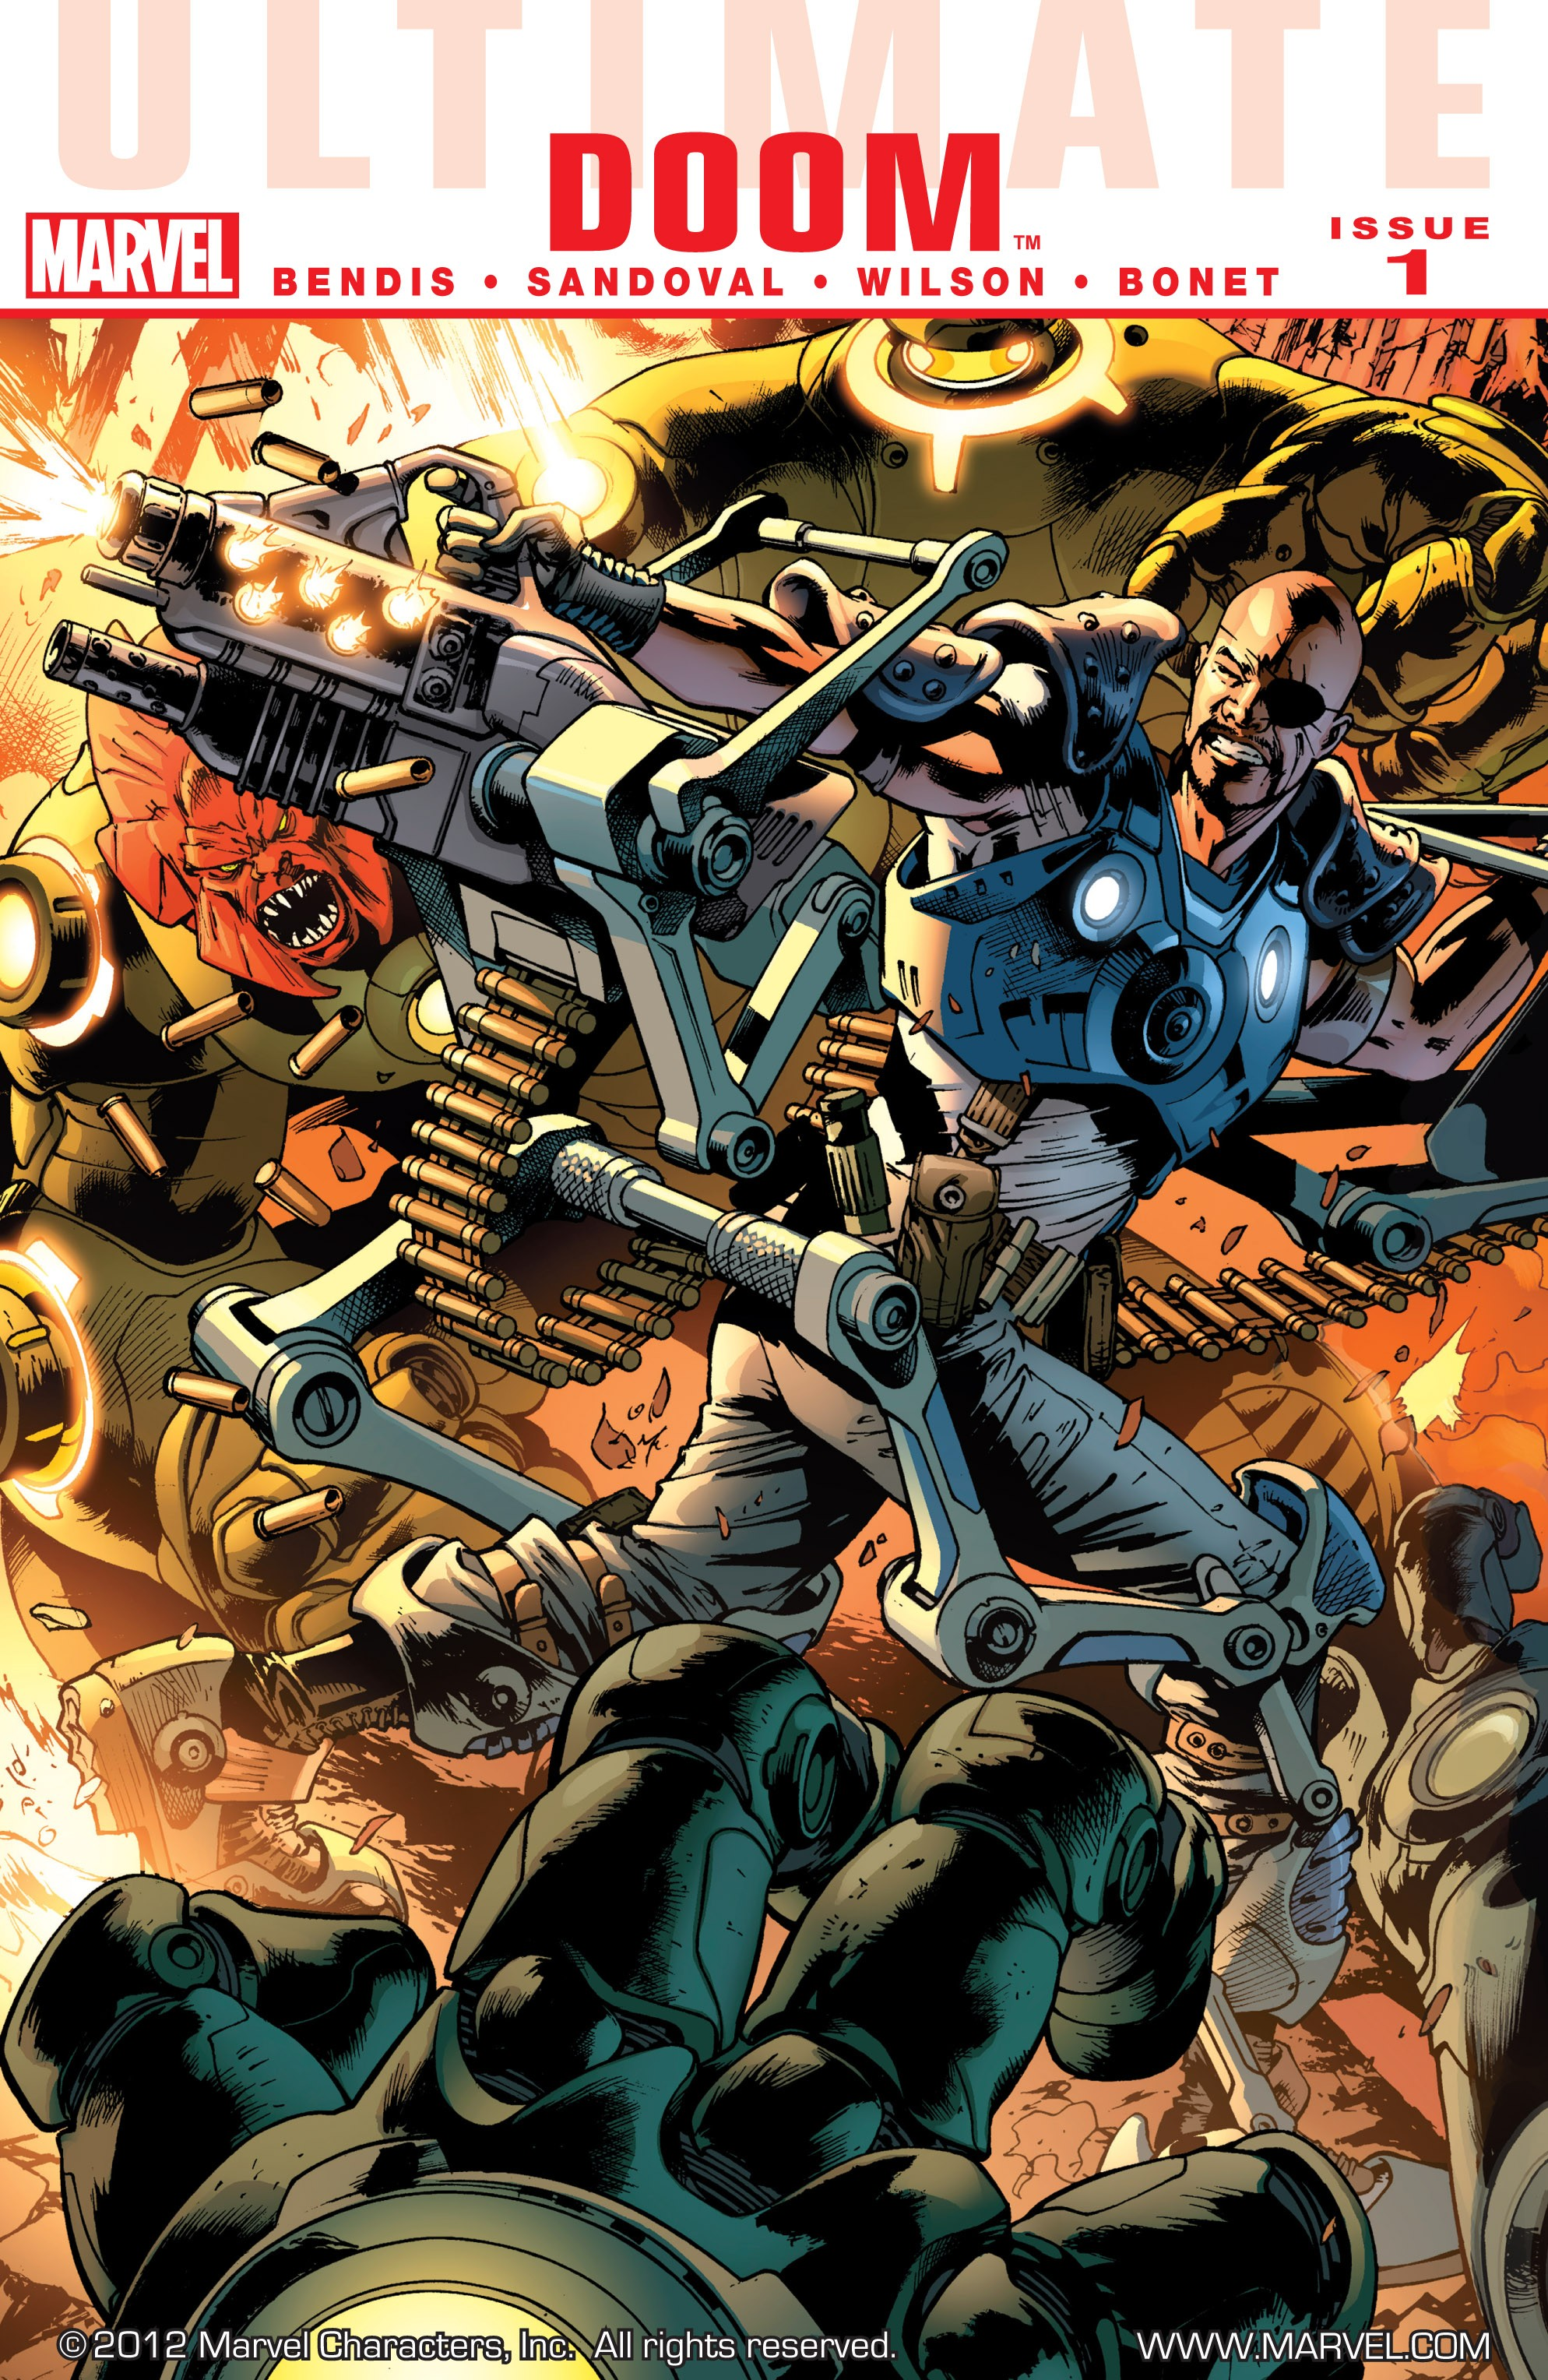 Read online Ultimate Comics Doomsday comic -  Issue # Full - 166